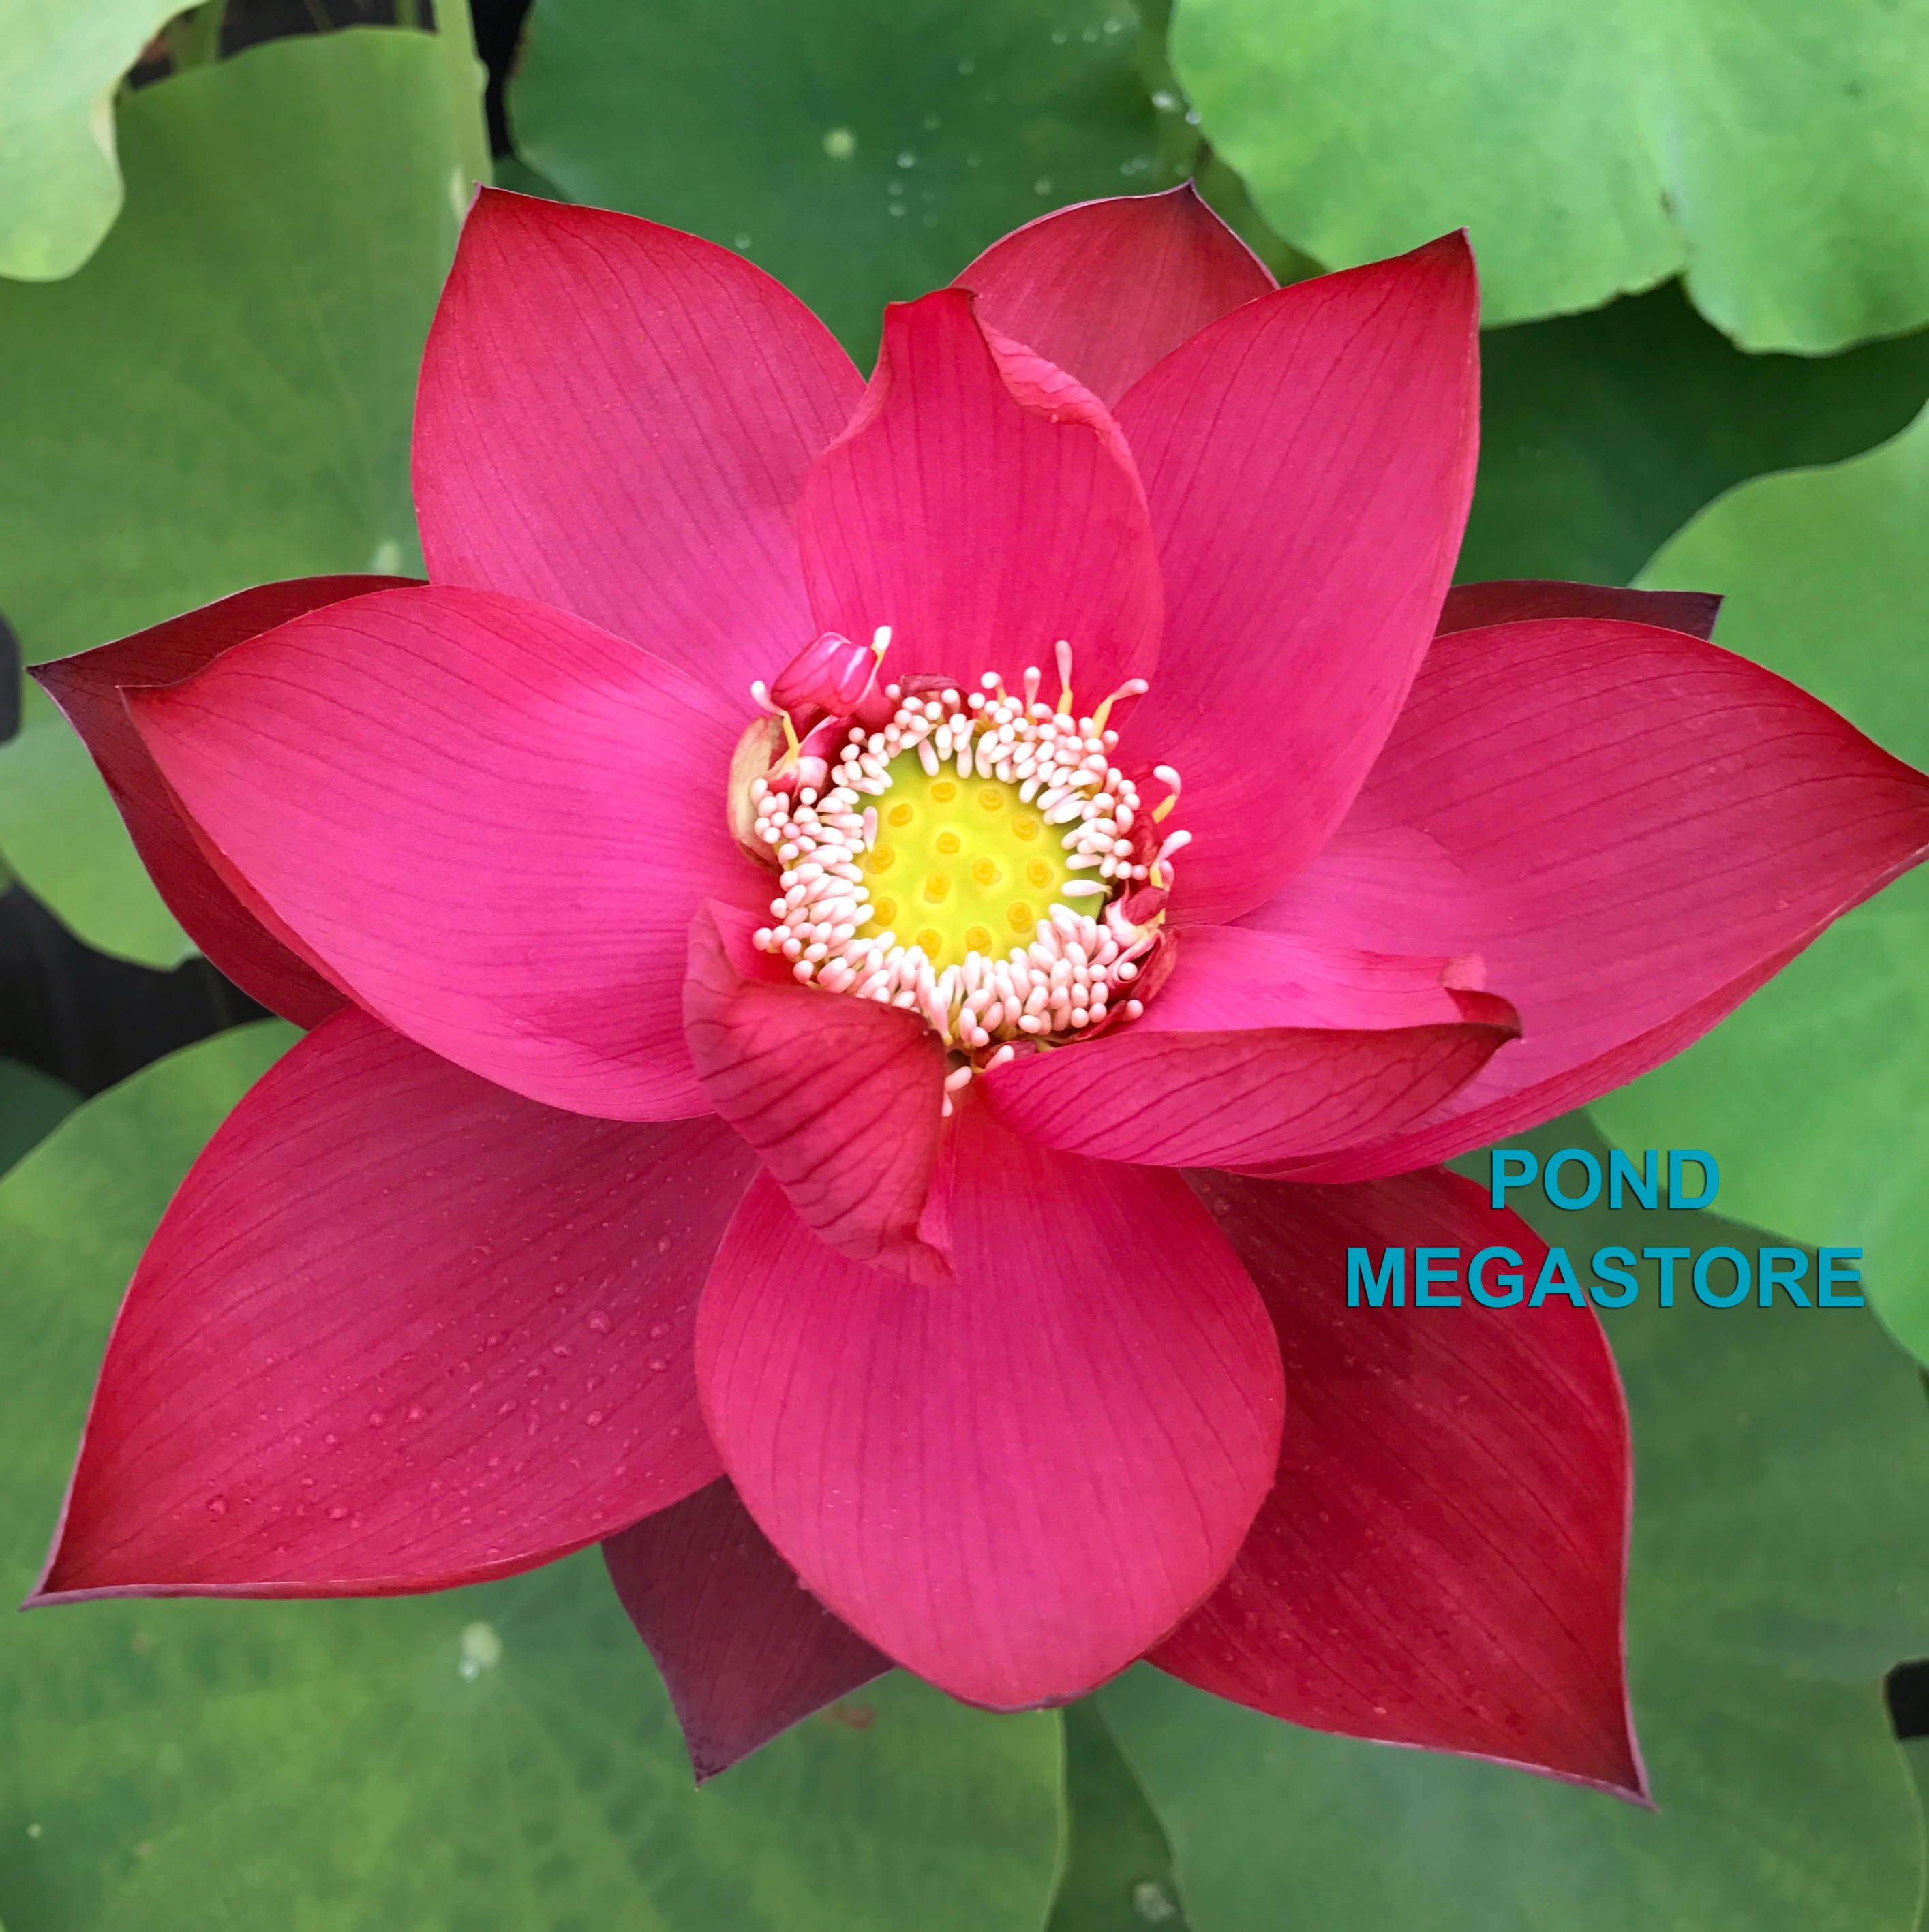 Red Lotus Flowers Pondmegastore Waterlilies Pond Plants Lotus